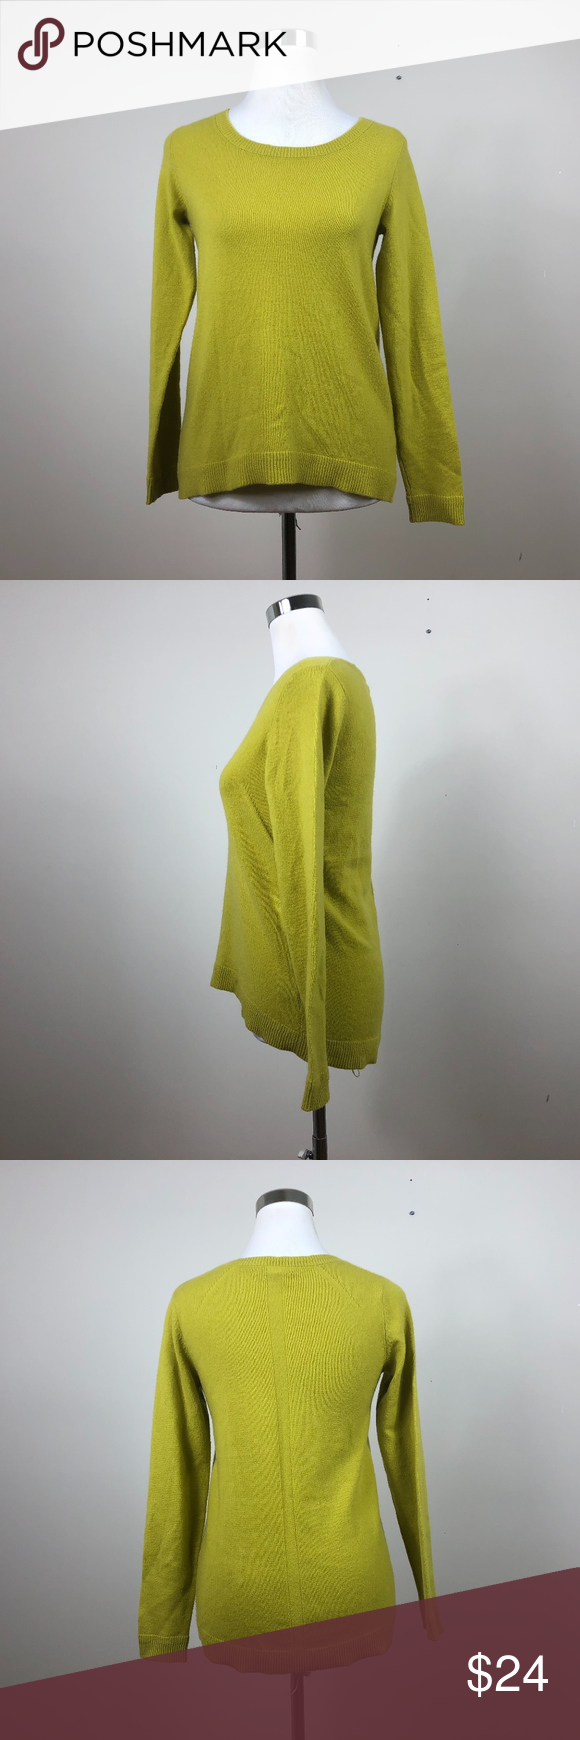 Neiman Marcus Cashmere Collection Sweater Neiman Marcus Cashmere Collection Sweater Normal Wear No Rips Or Stains Is A Yellow G Sweaters Cashmere Collection